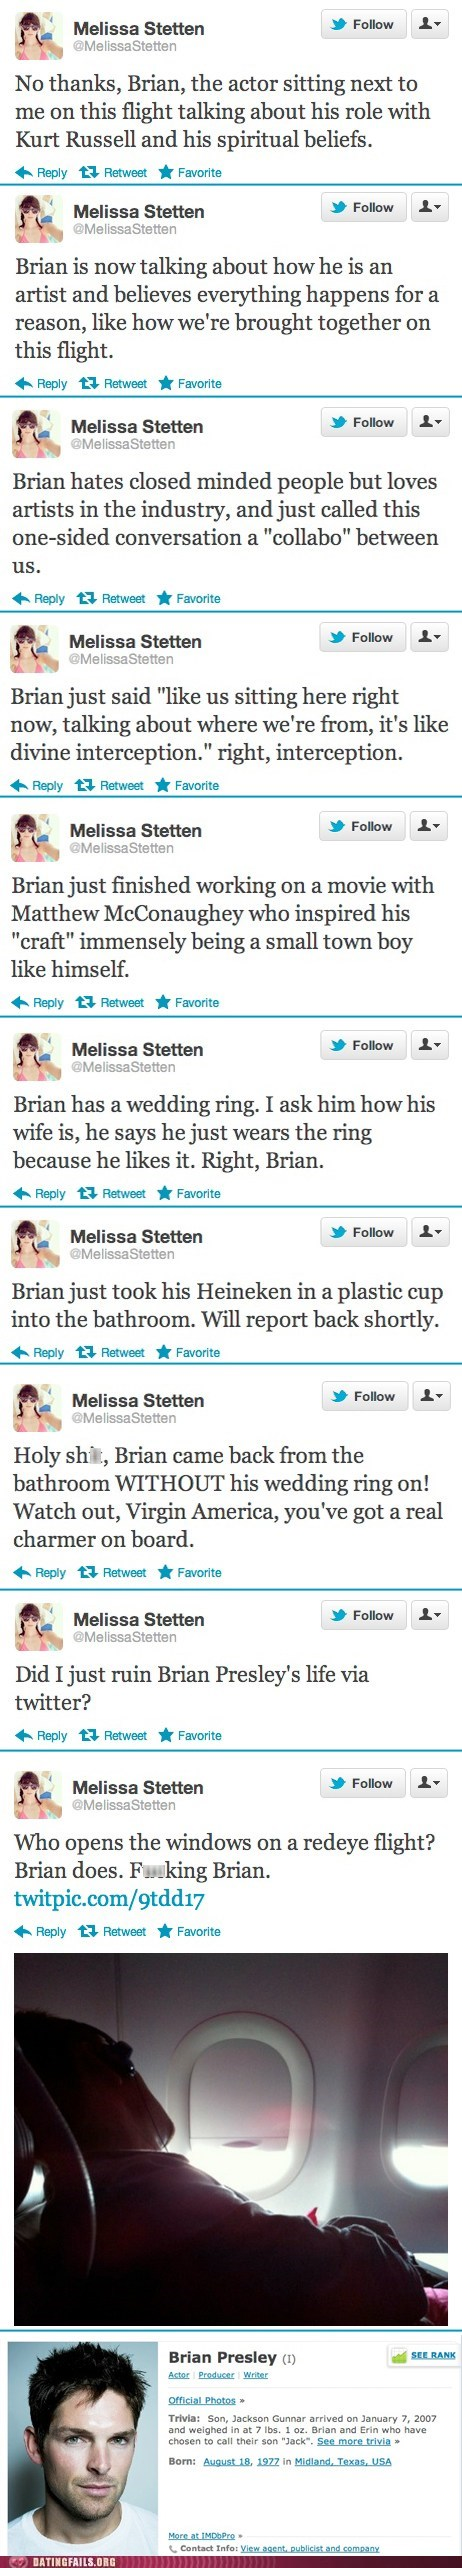 actors,brian,brian presley,failbook,flirting,married,melissa stetten